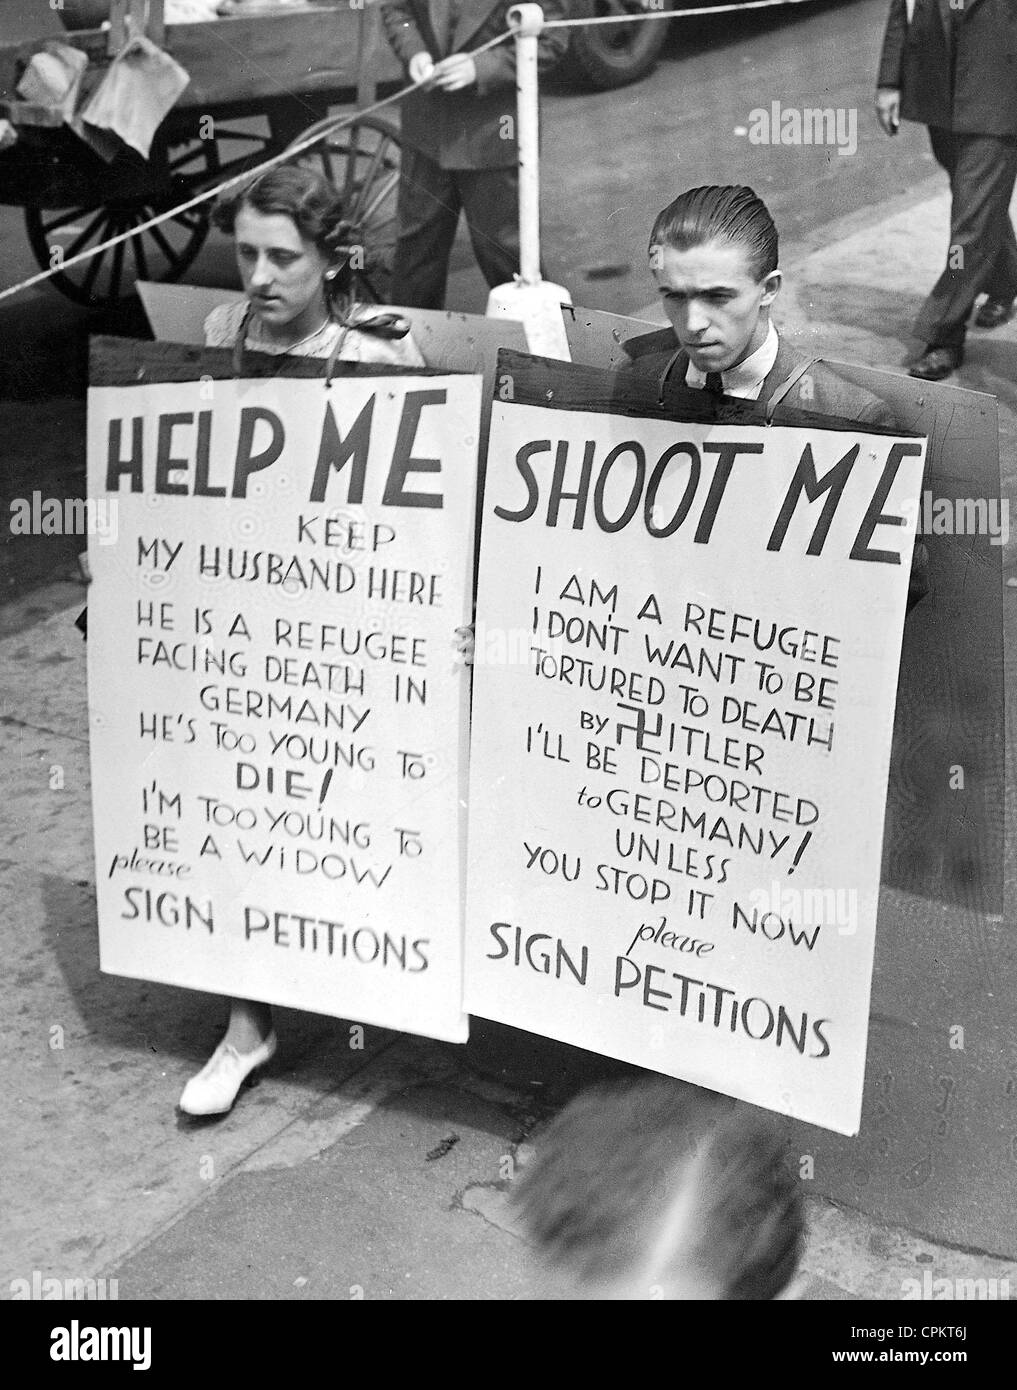 Otto Richter, a German Jew, and his wife protest against his deportation to Germany by the US immigration authorities,Stock Photo